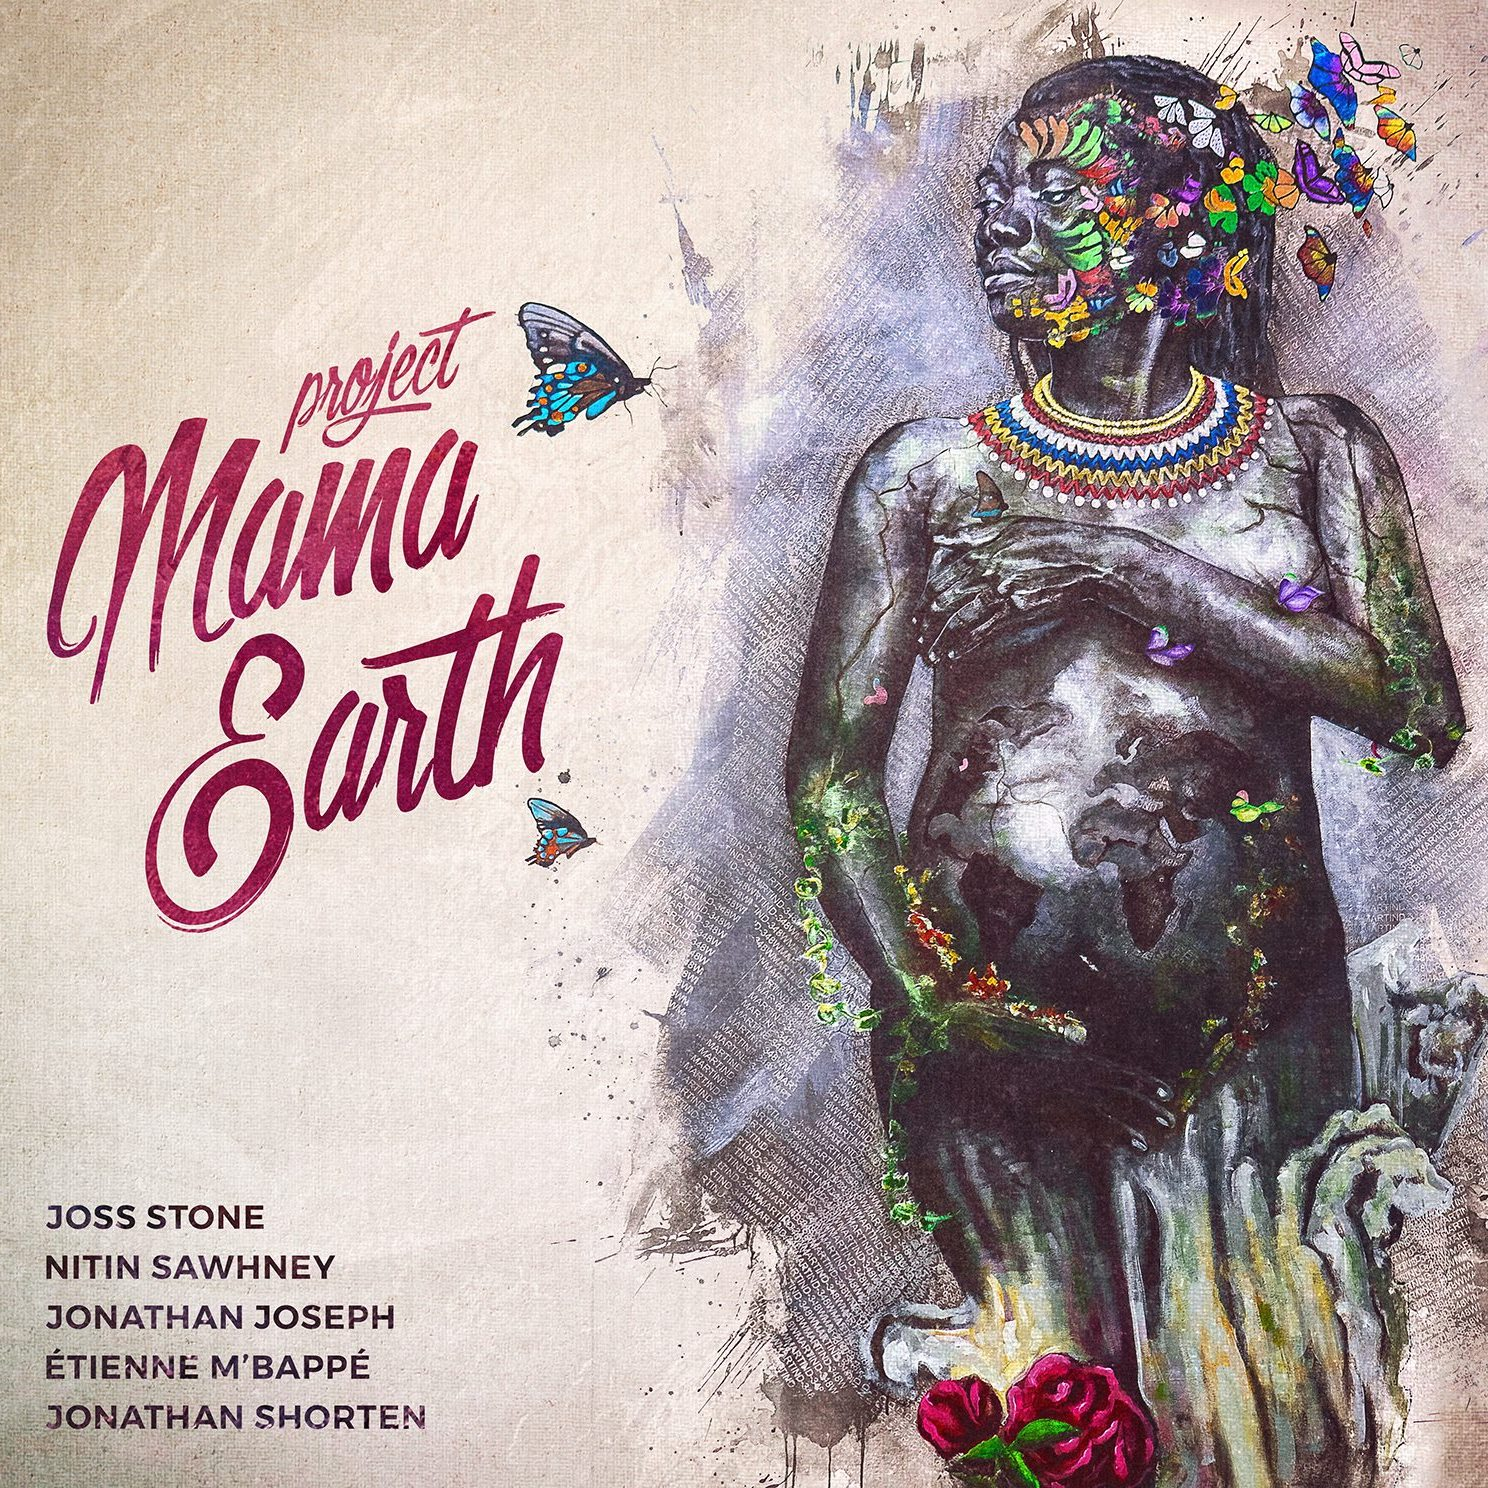 joss stone Project Mama Earth